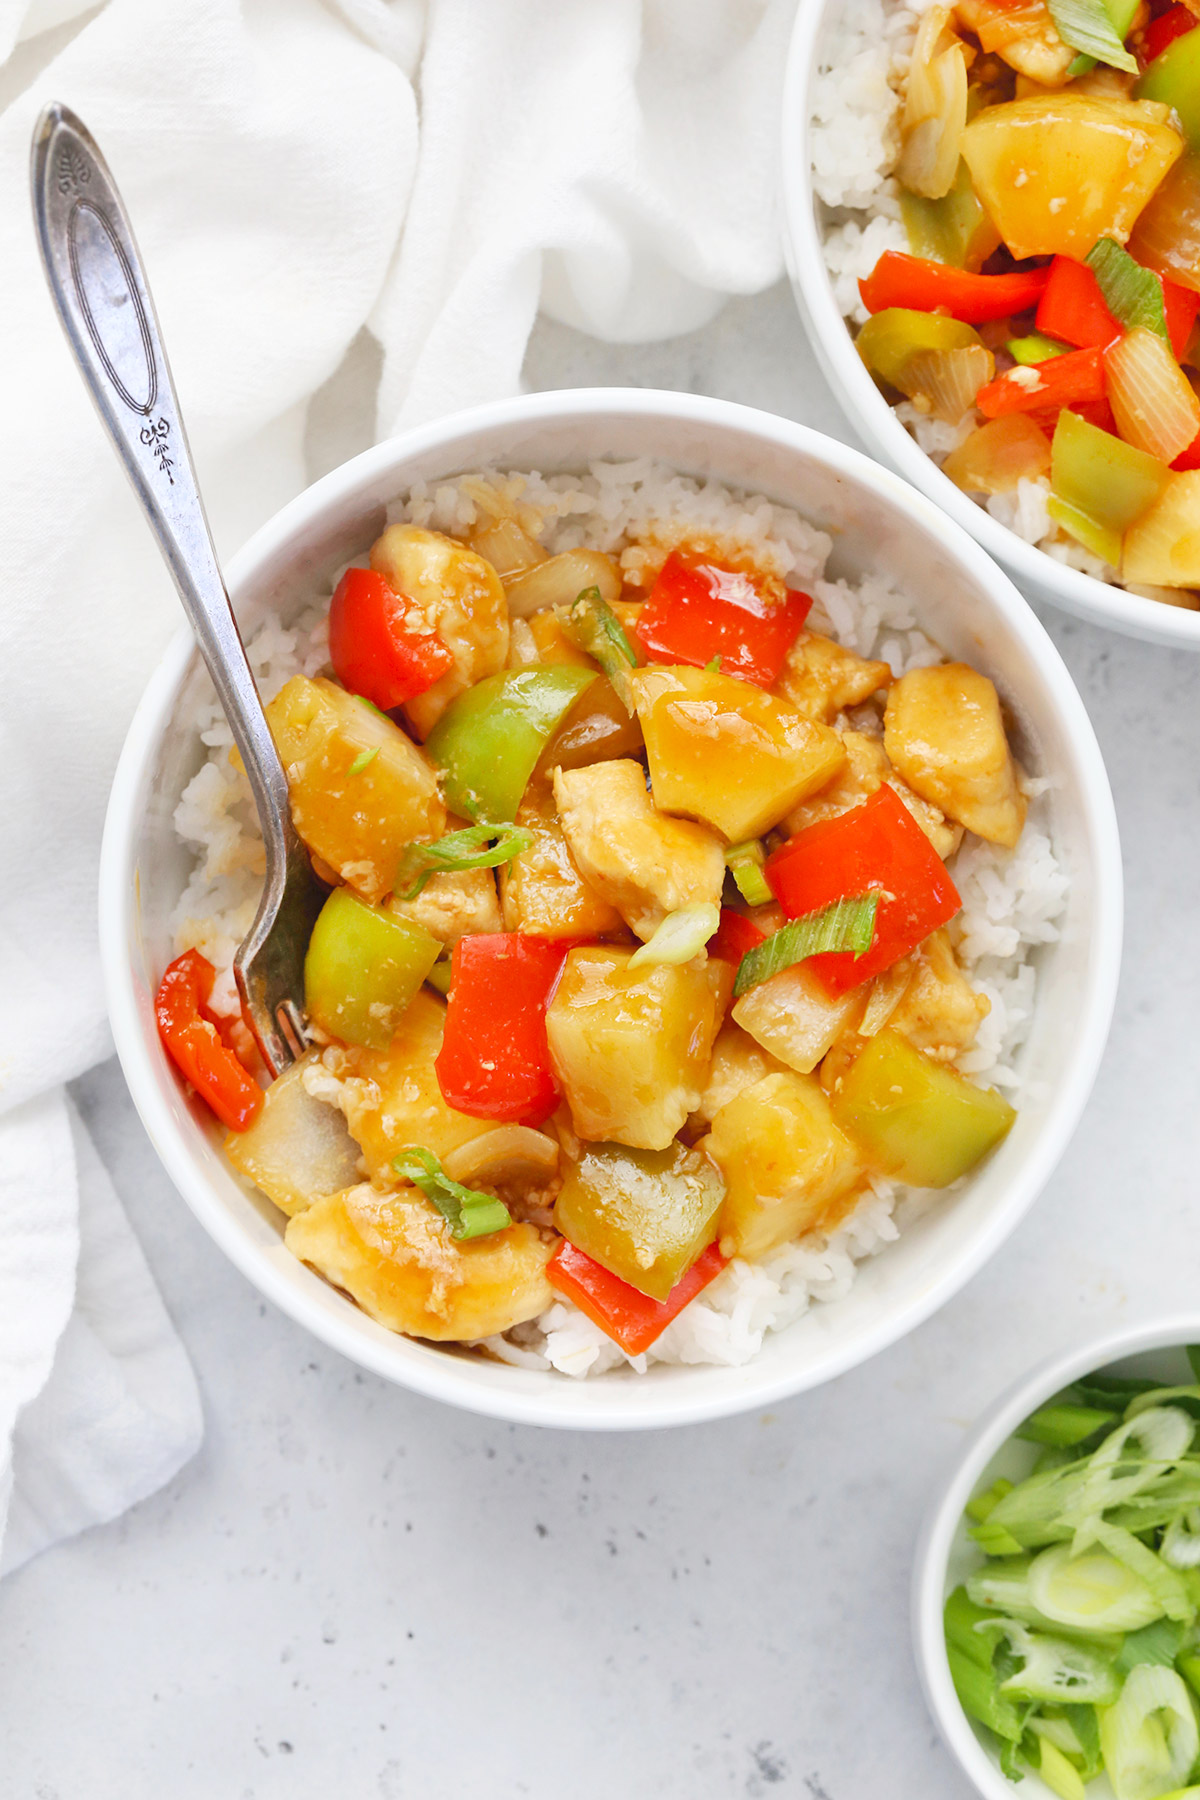 Close-up view of a bowl of Healthy Sweet and Sour Chicken